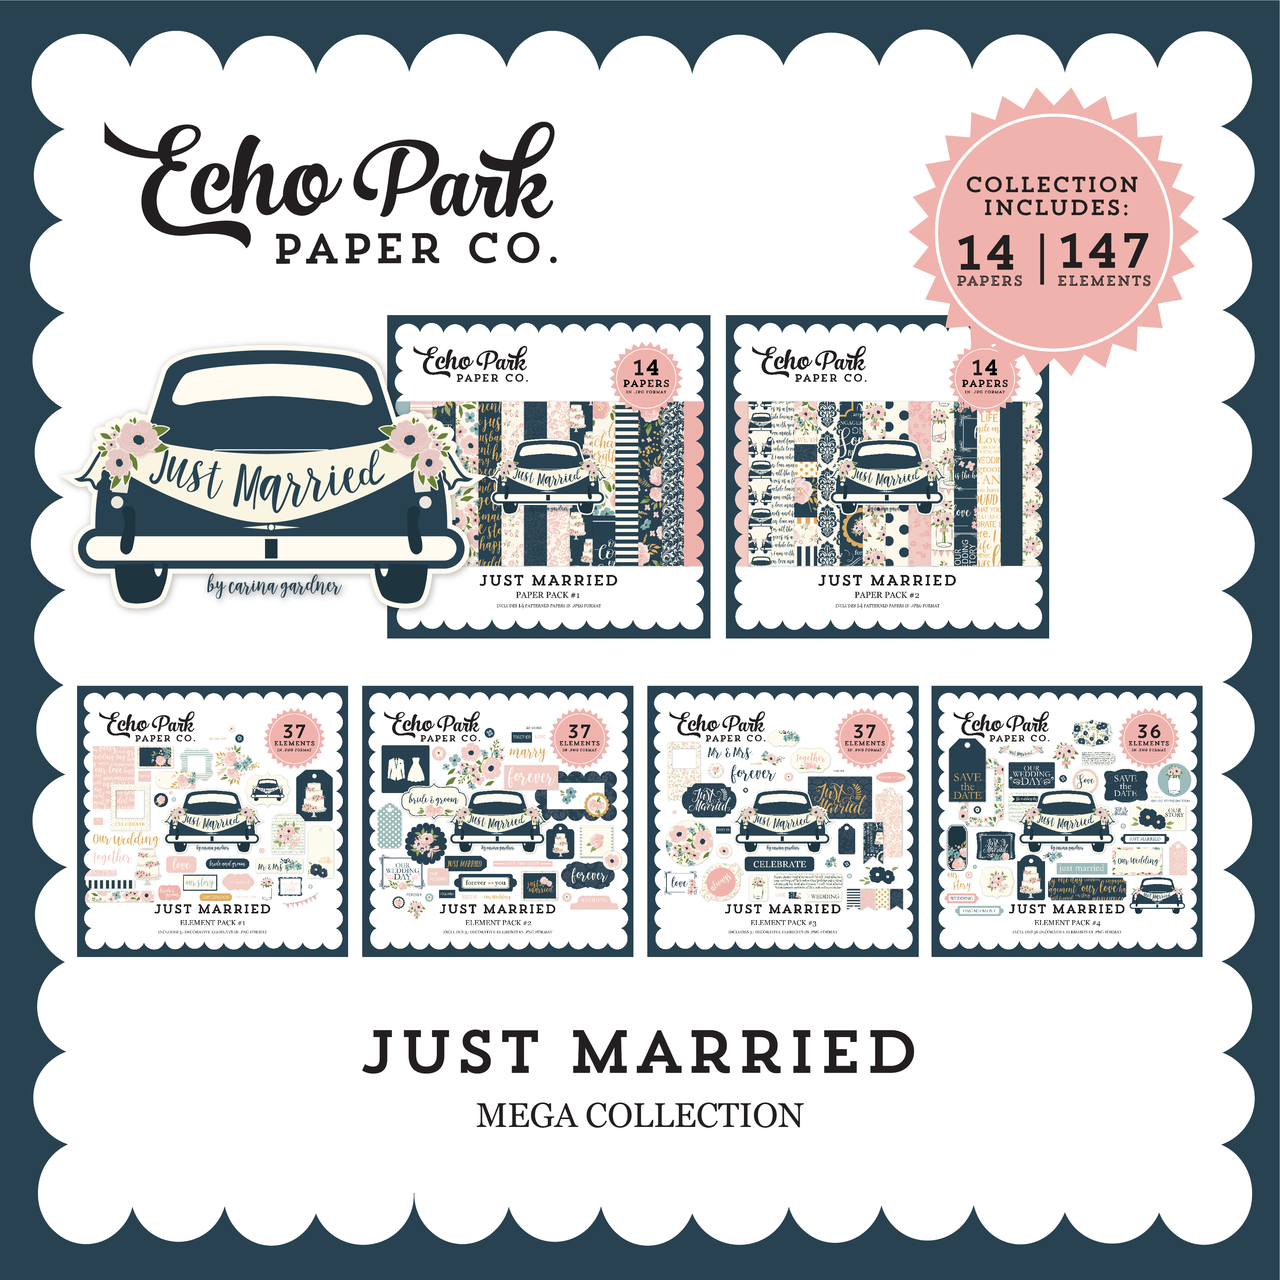 Just Married Mega Collection